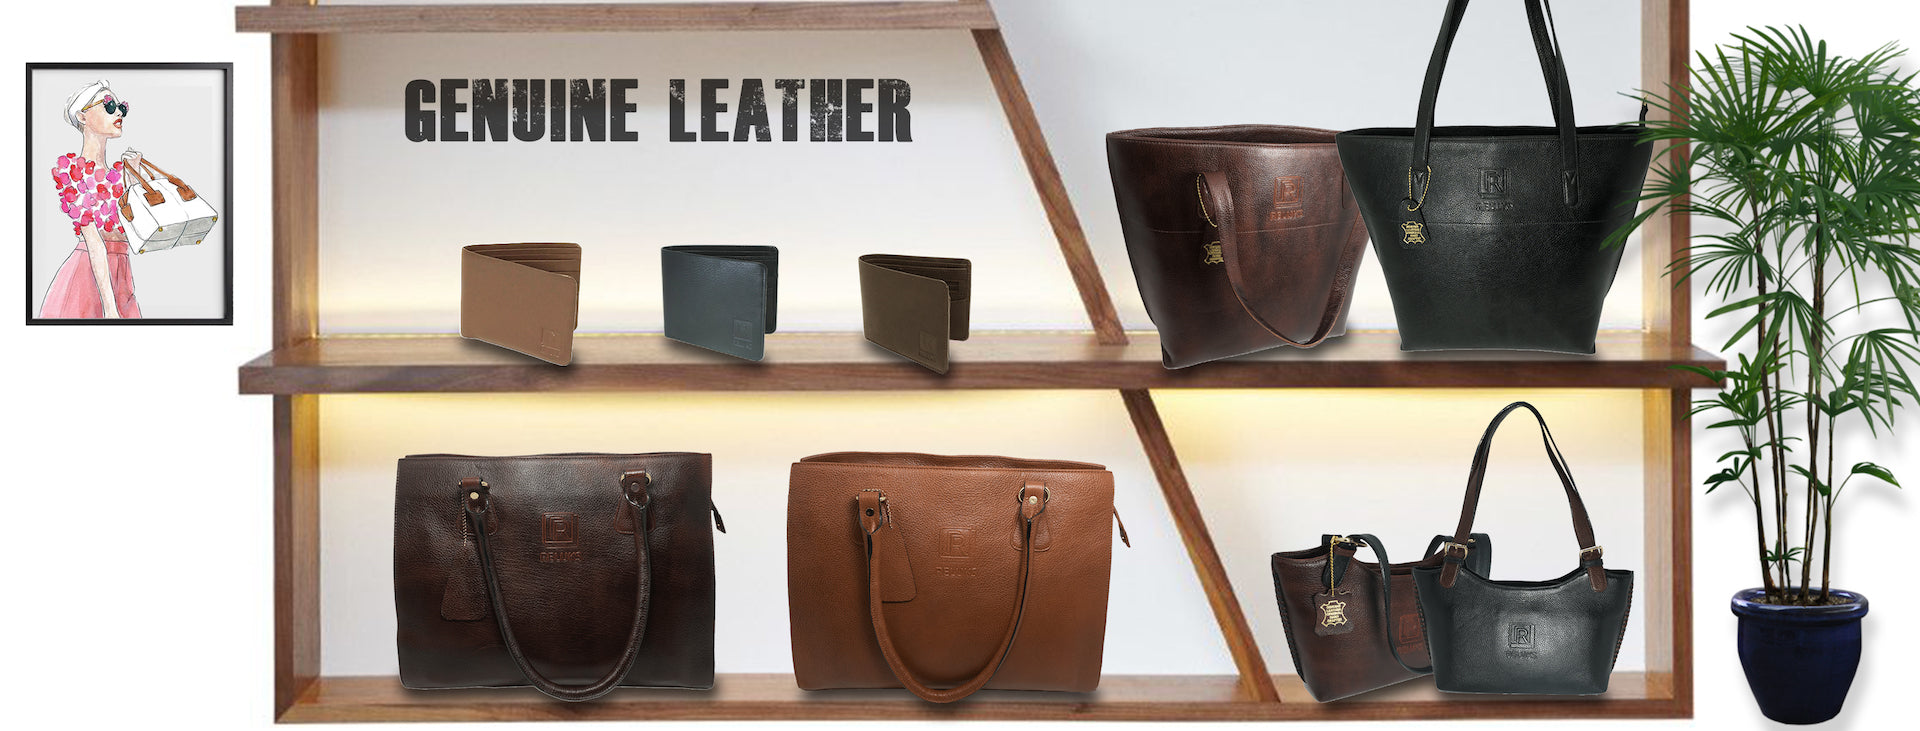 reluks leather bags and wallets collection